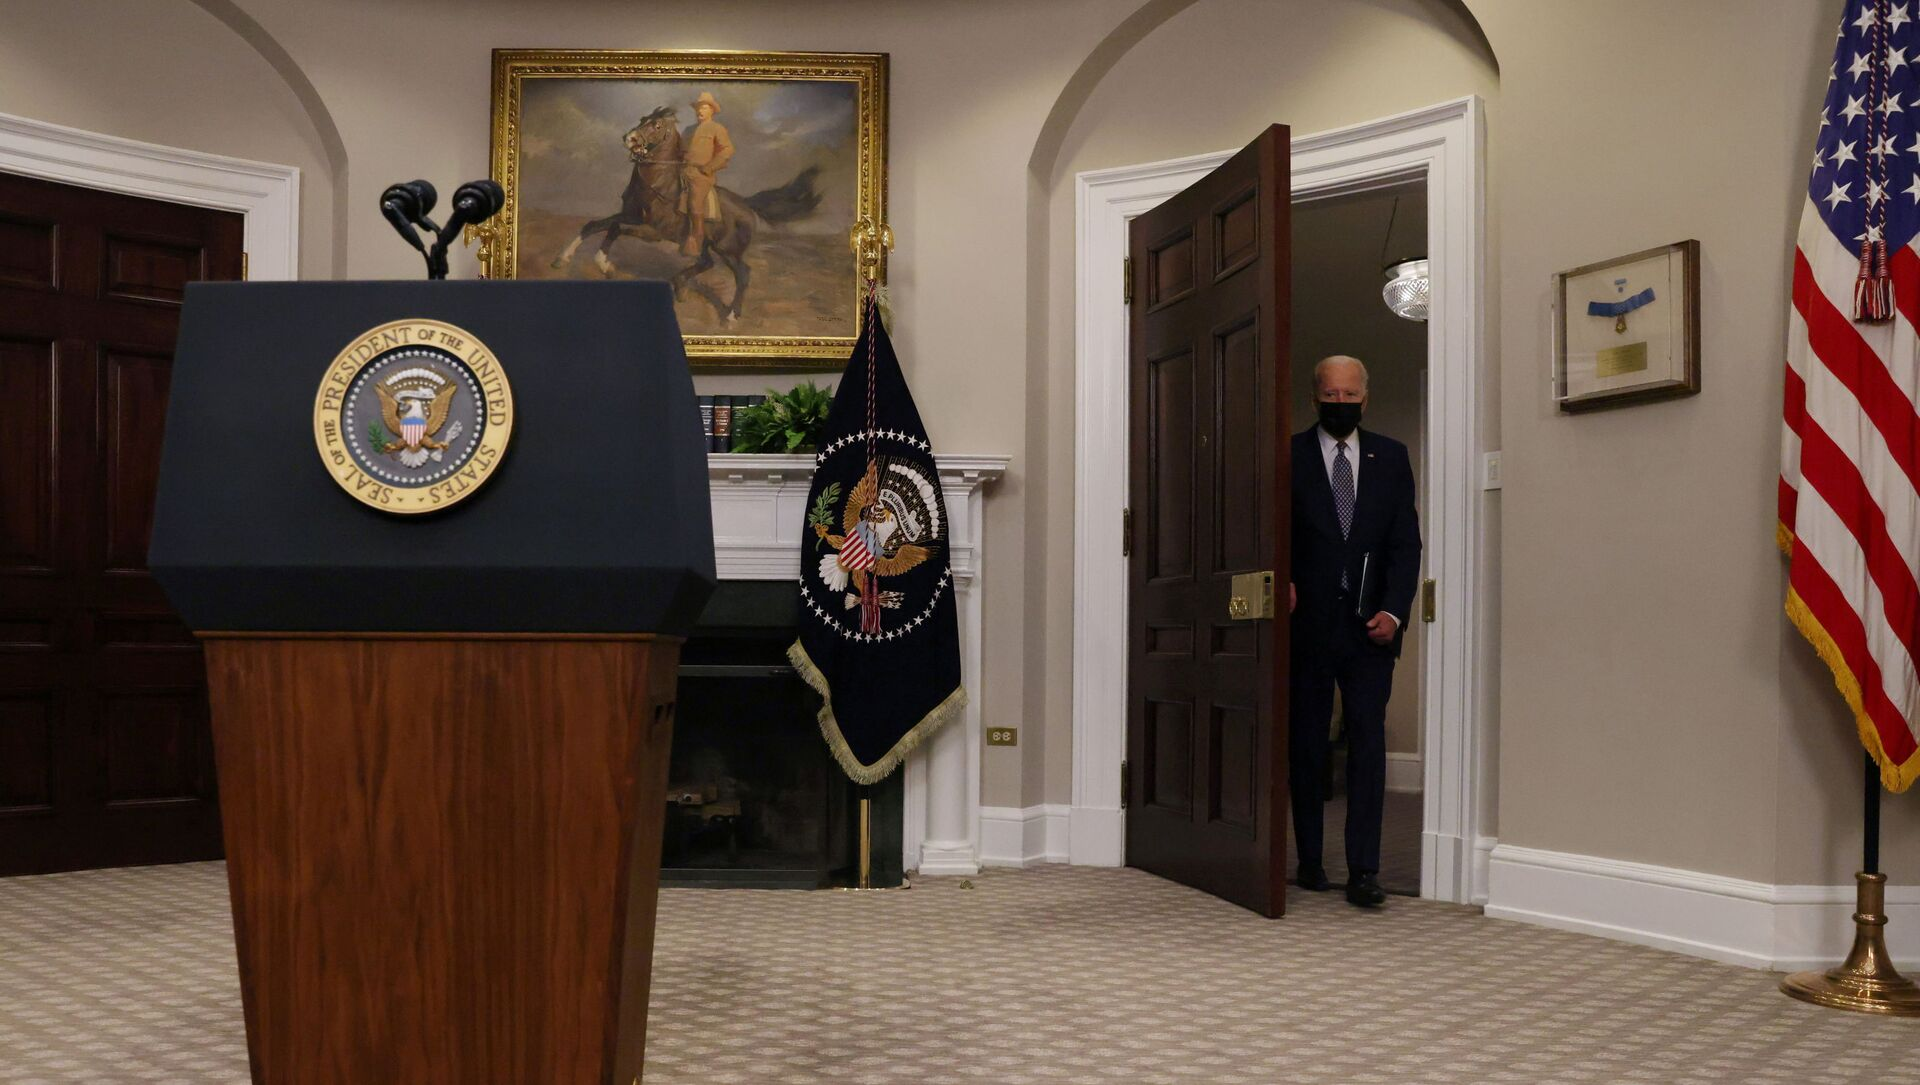 U.S. President Joe Biden enters the room to give a statement about the U.S. withdrawal from Afghanistan in the Roosevelt Room at the White House in Washington, U.S., August 24, 2021 - Sputnik International, 1920, 26.08.2021